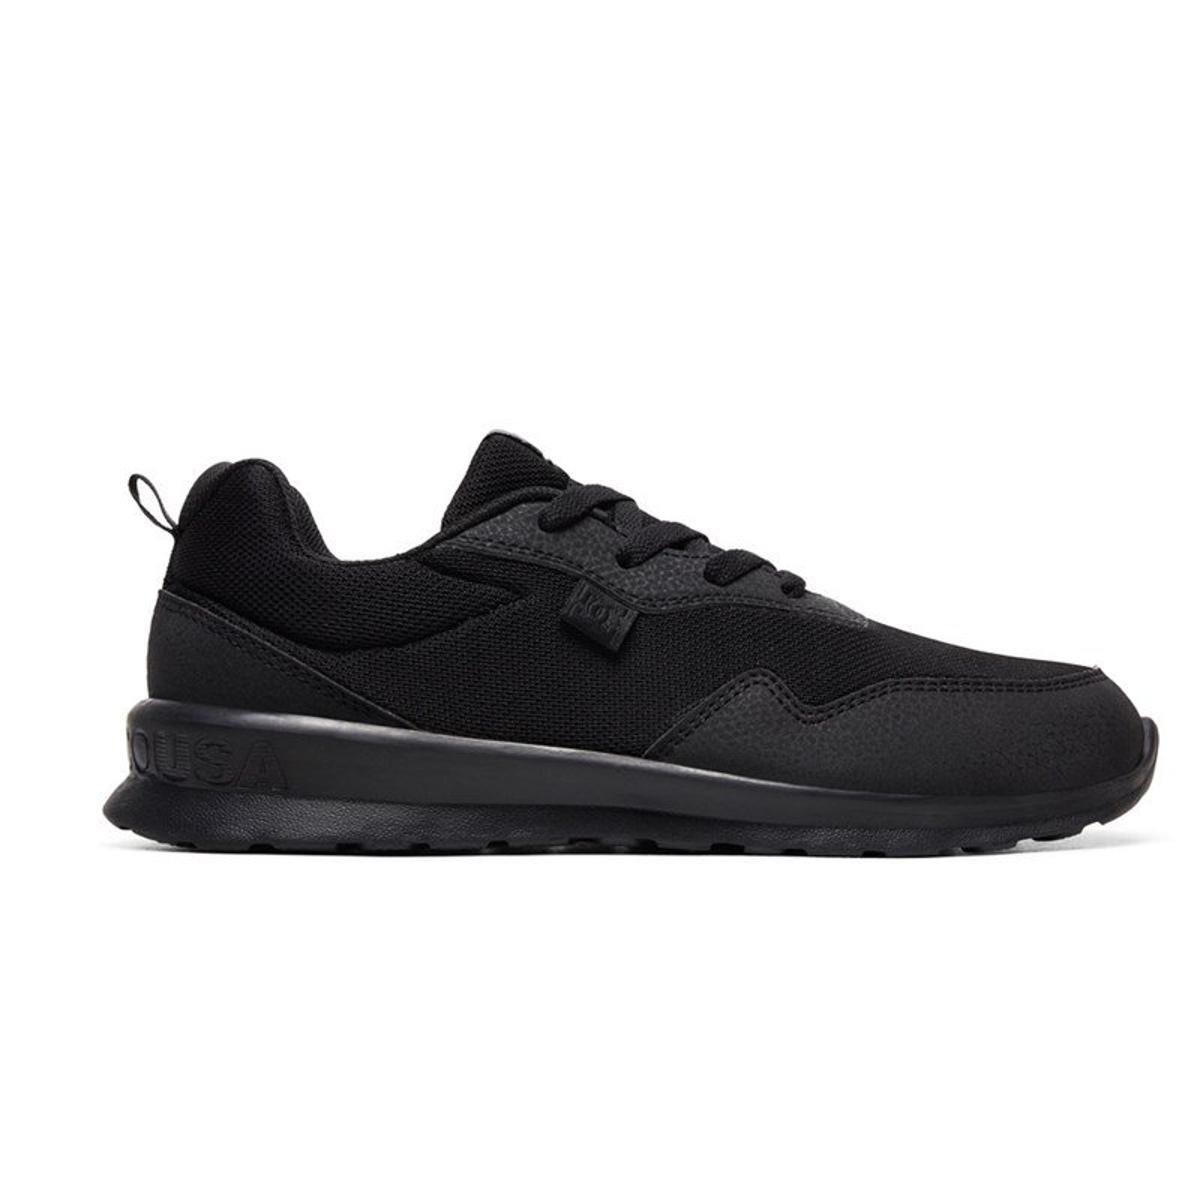 TÊNIS DC SHOES HARTFERD BLACK